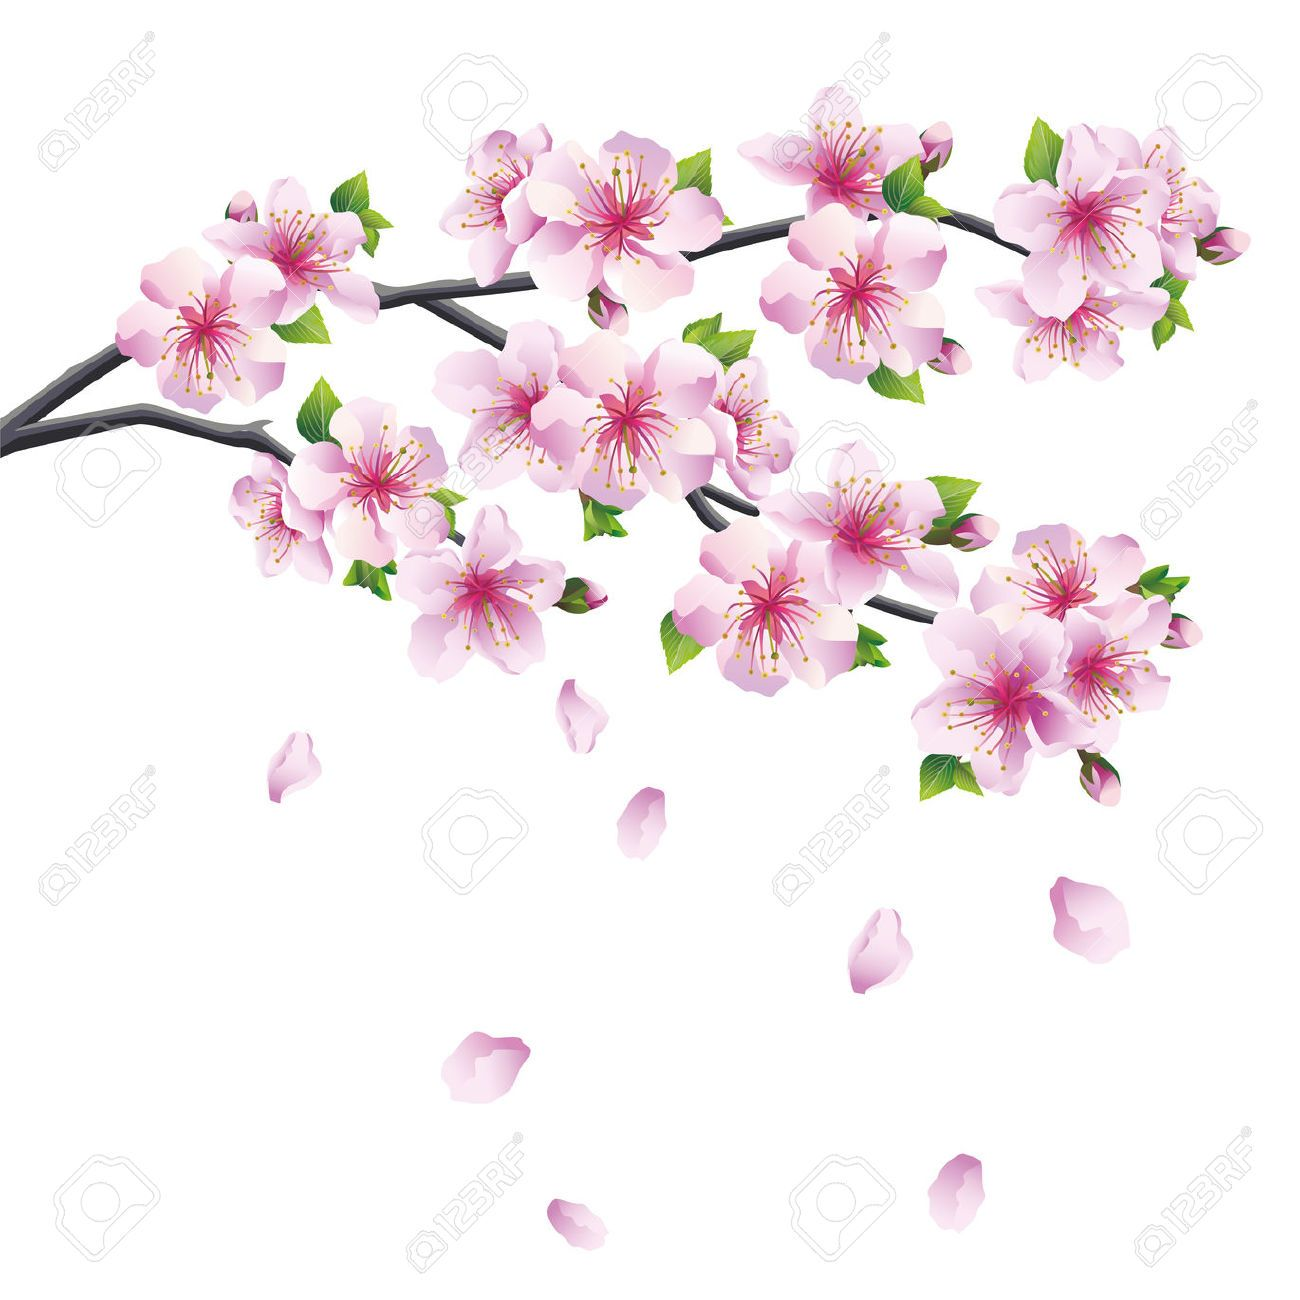 29121011 Blossoming Branch Of Sakura Japanese Cherry Tree With Falling Petal Beautiful Cherry Blossom P Dessin Fleur Fleur De Cerisier Dessin Fleur De Cerisier